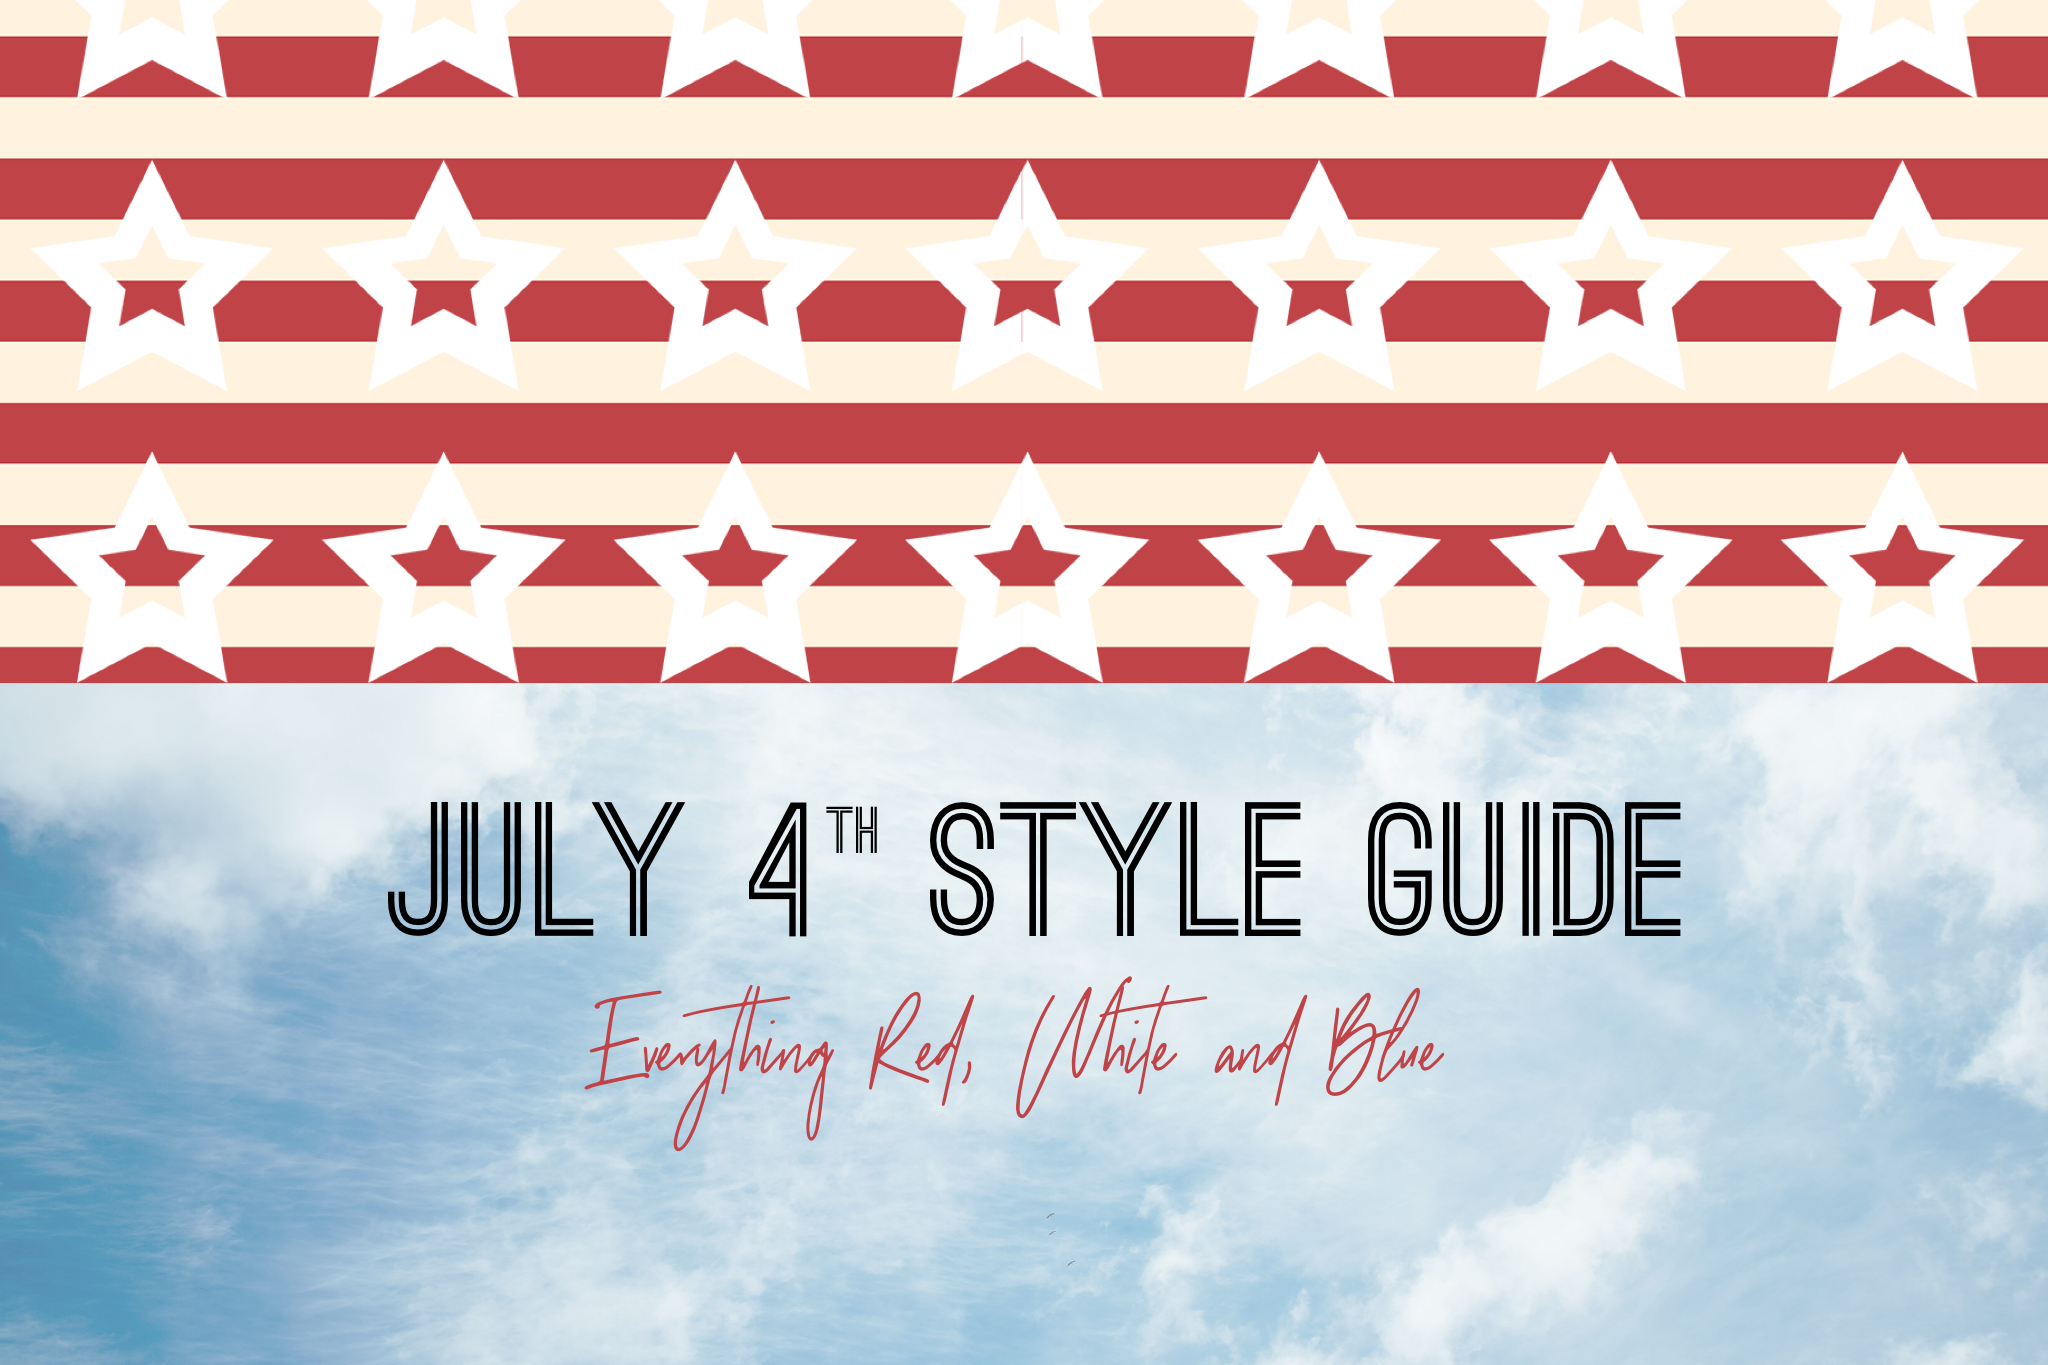 nastia_liukin_summer_fourth_july_outfit_ideas_gymnast_america